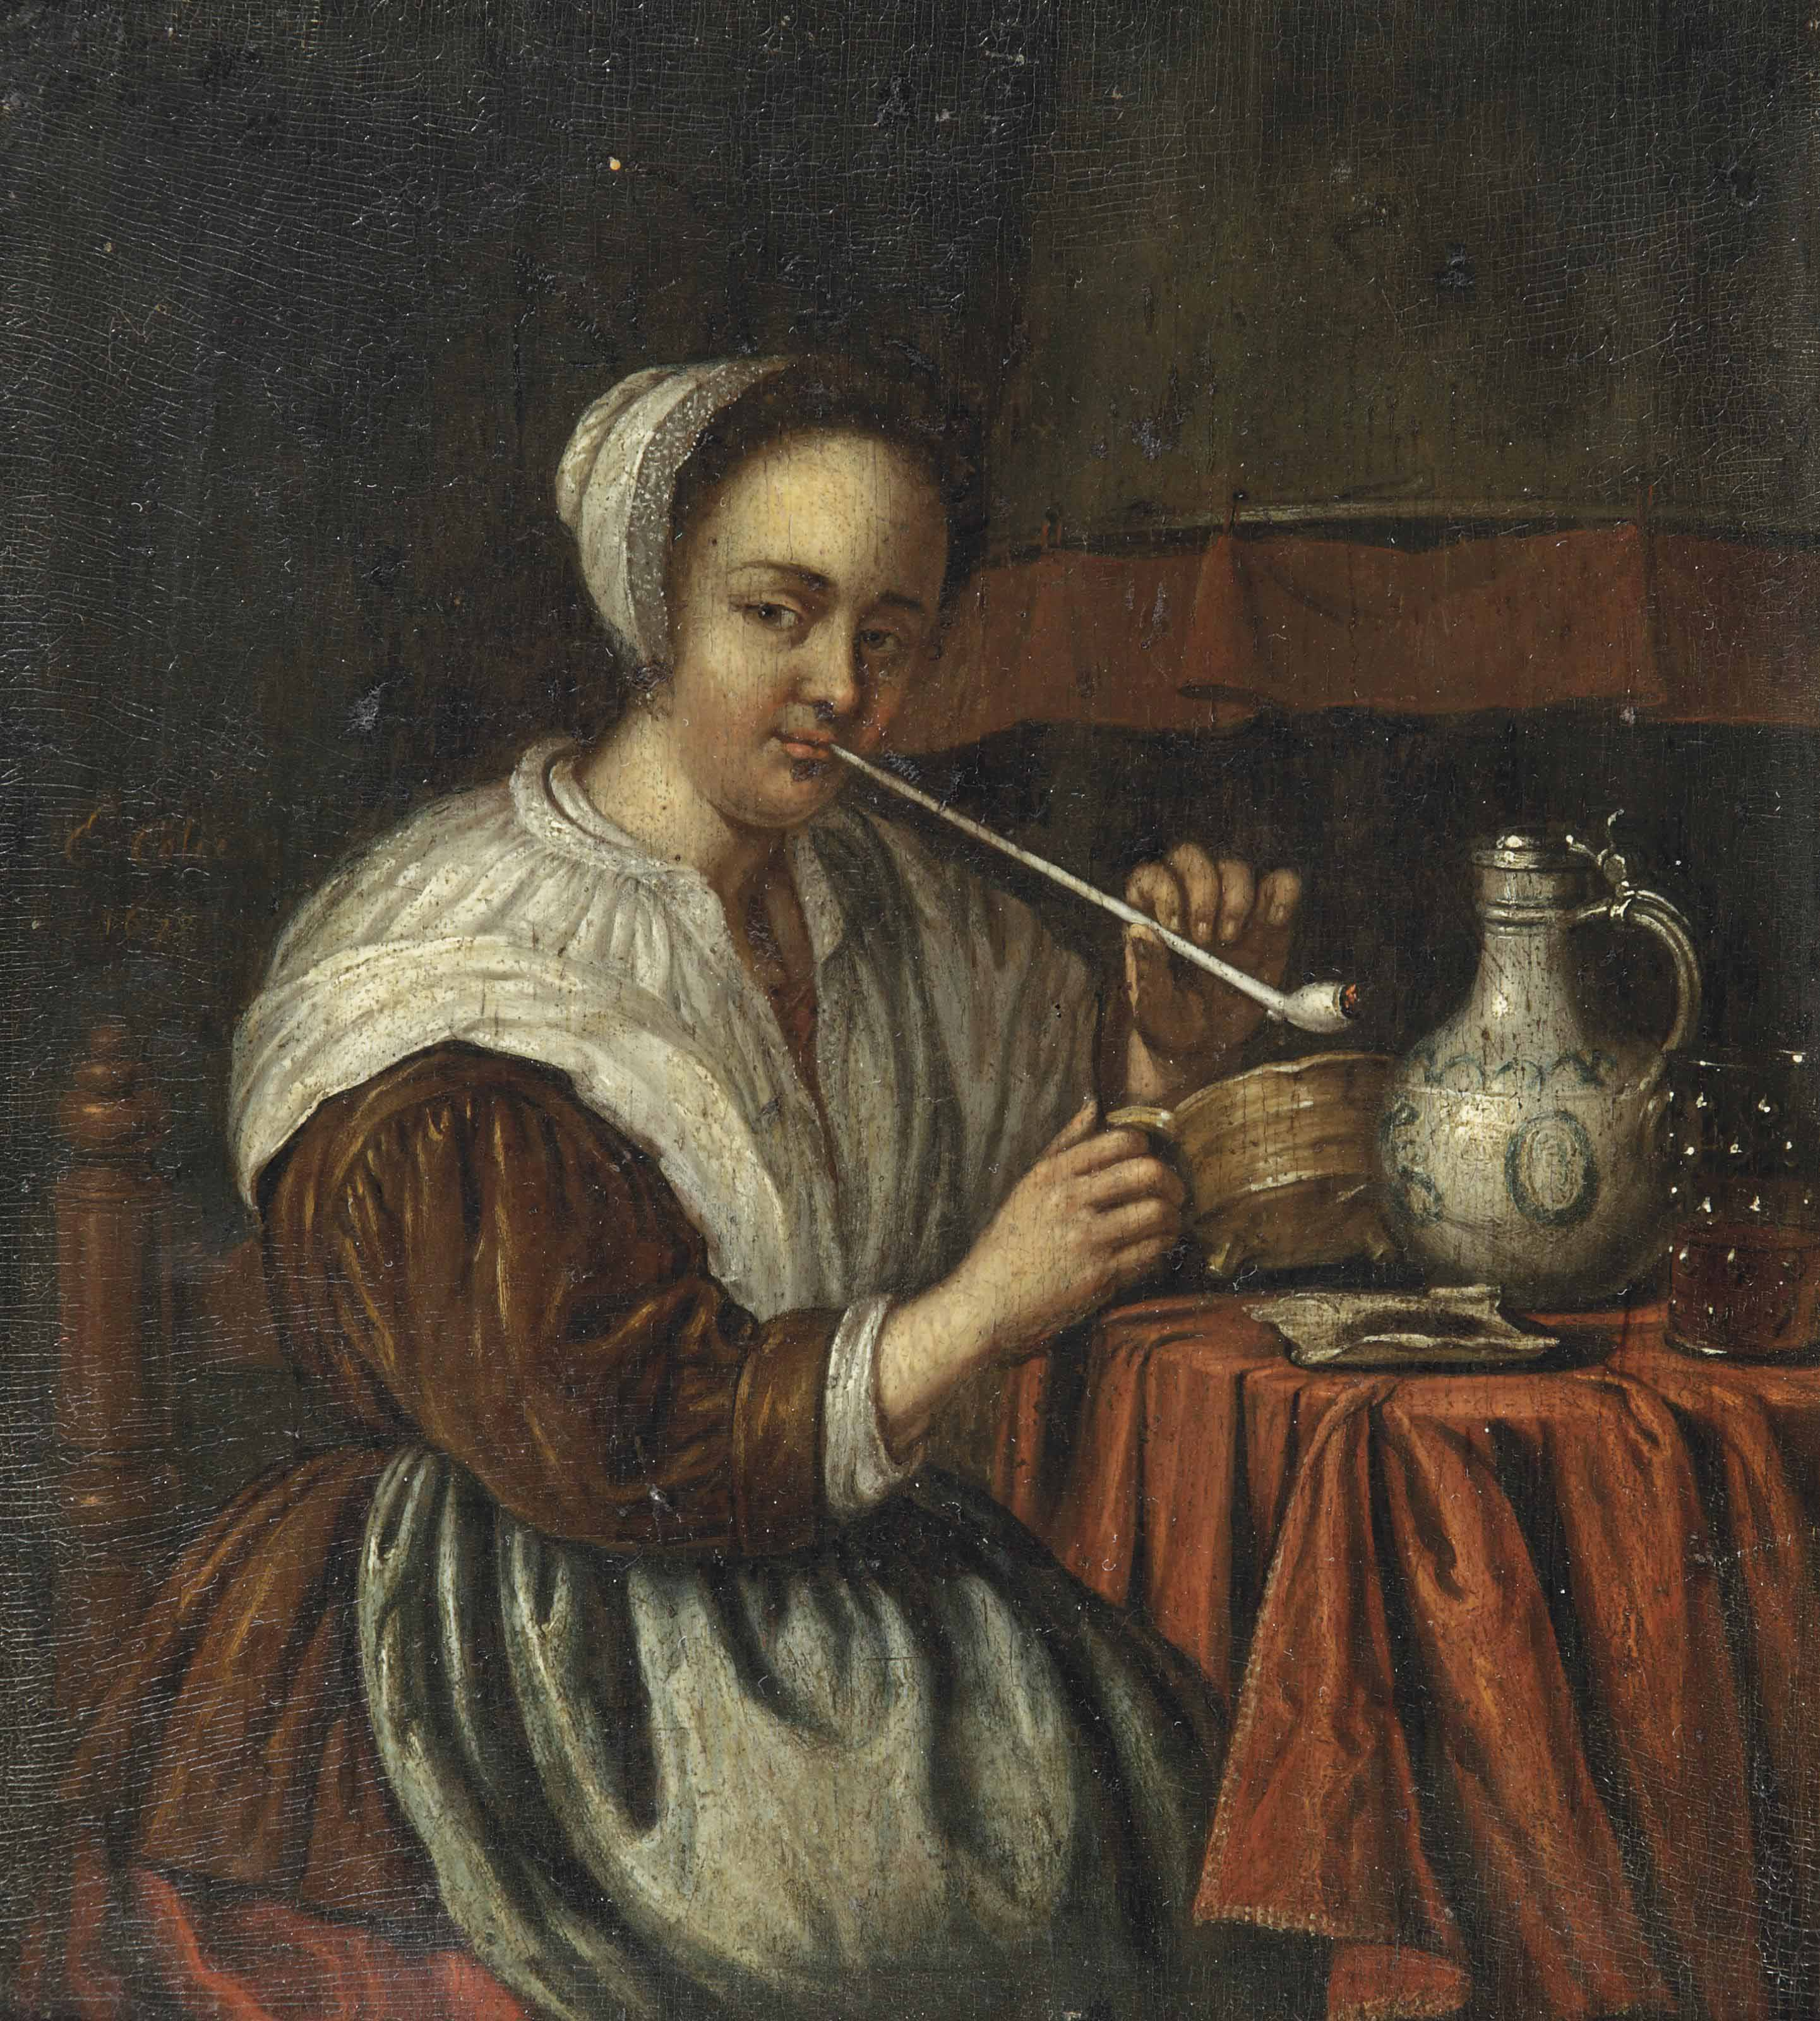 A woman smoking a pipe at a table